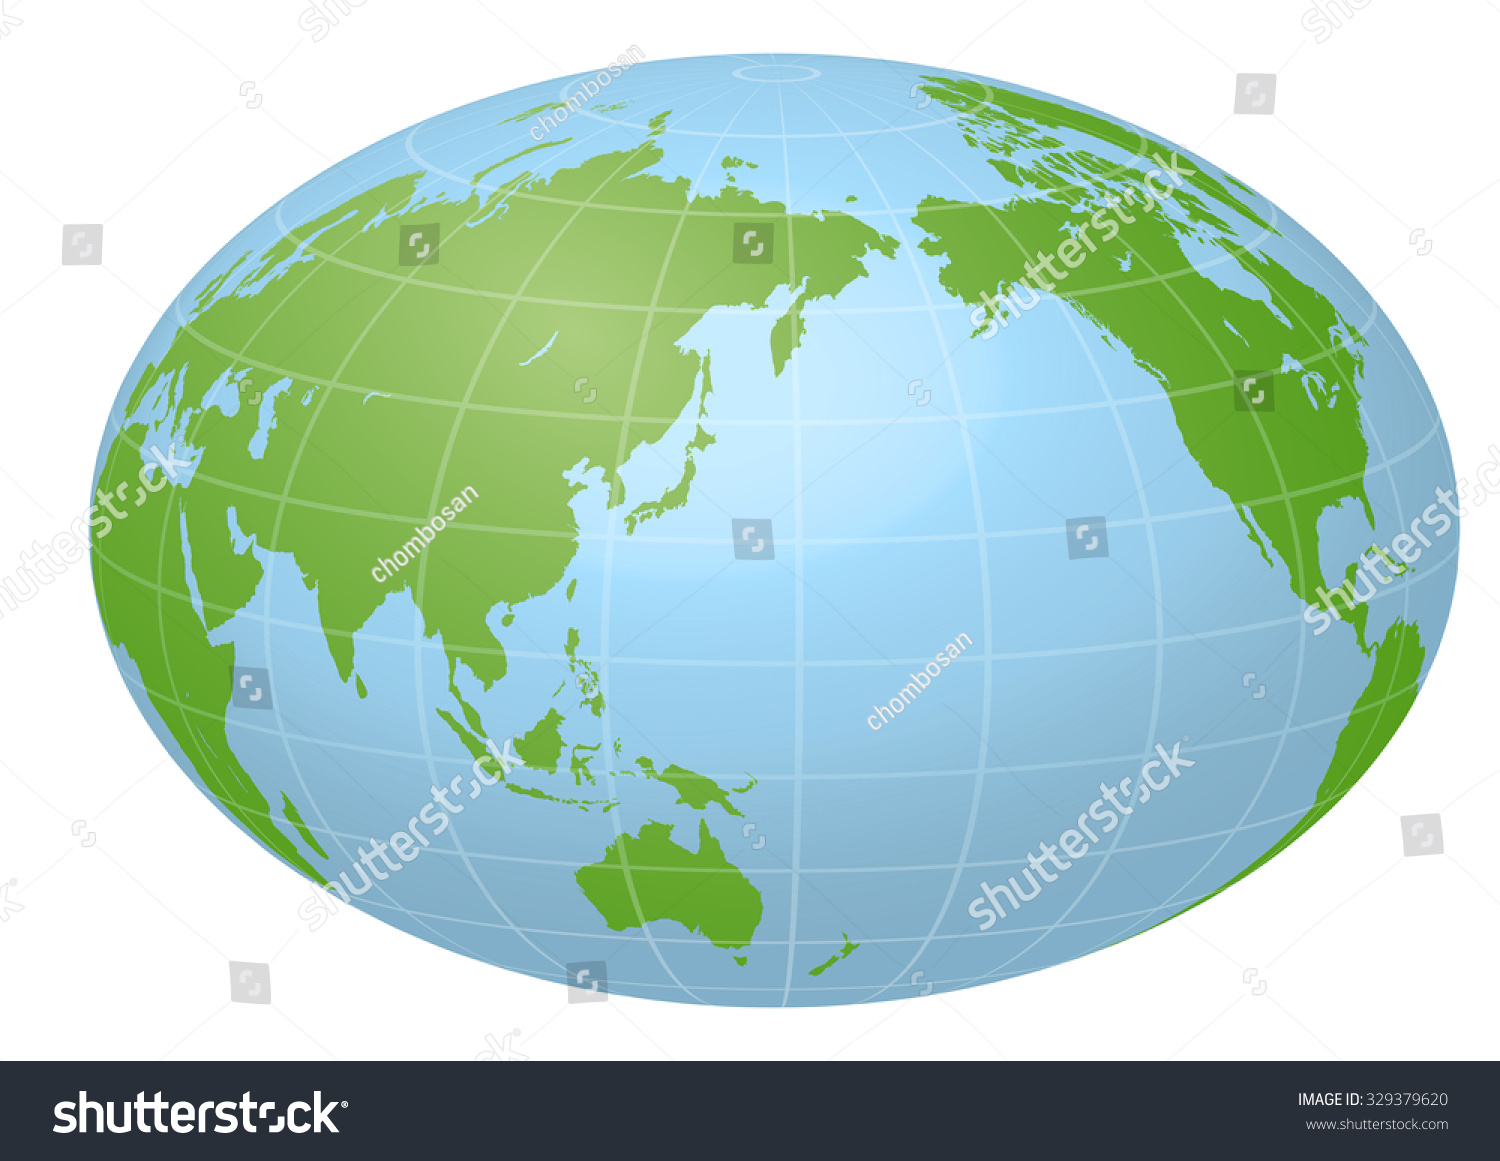 Pseudo Earth That Contains Whole World Stock Vector (Royalty Free ...